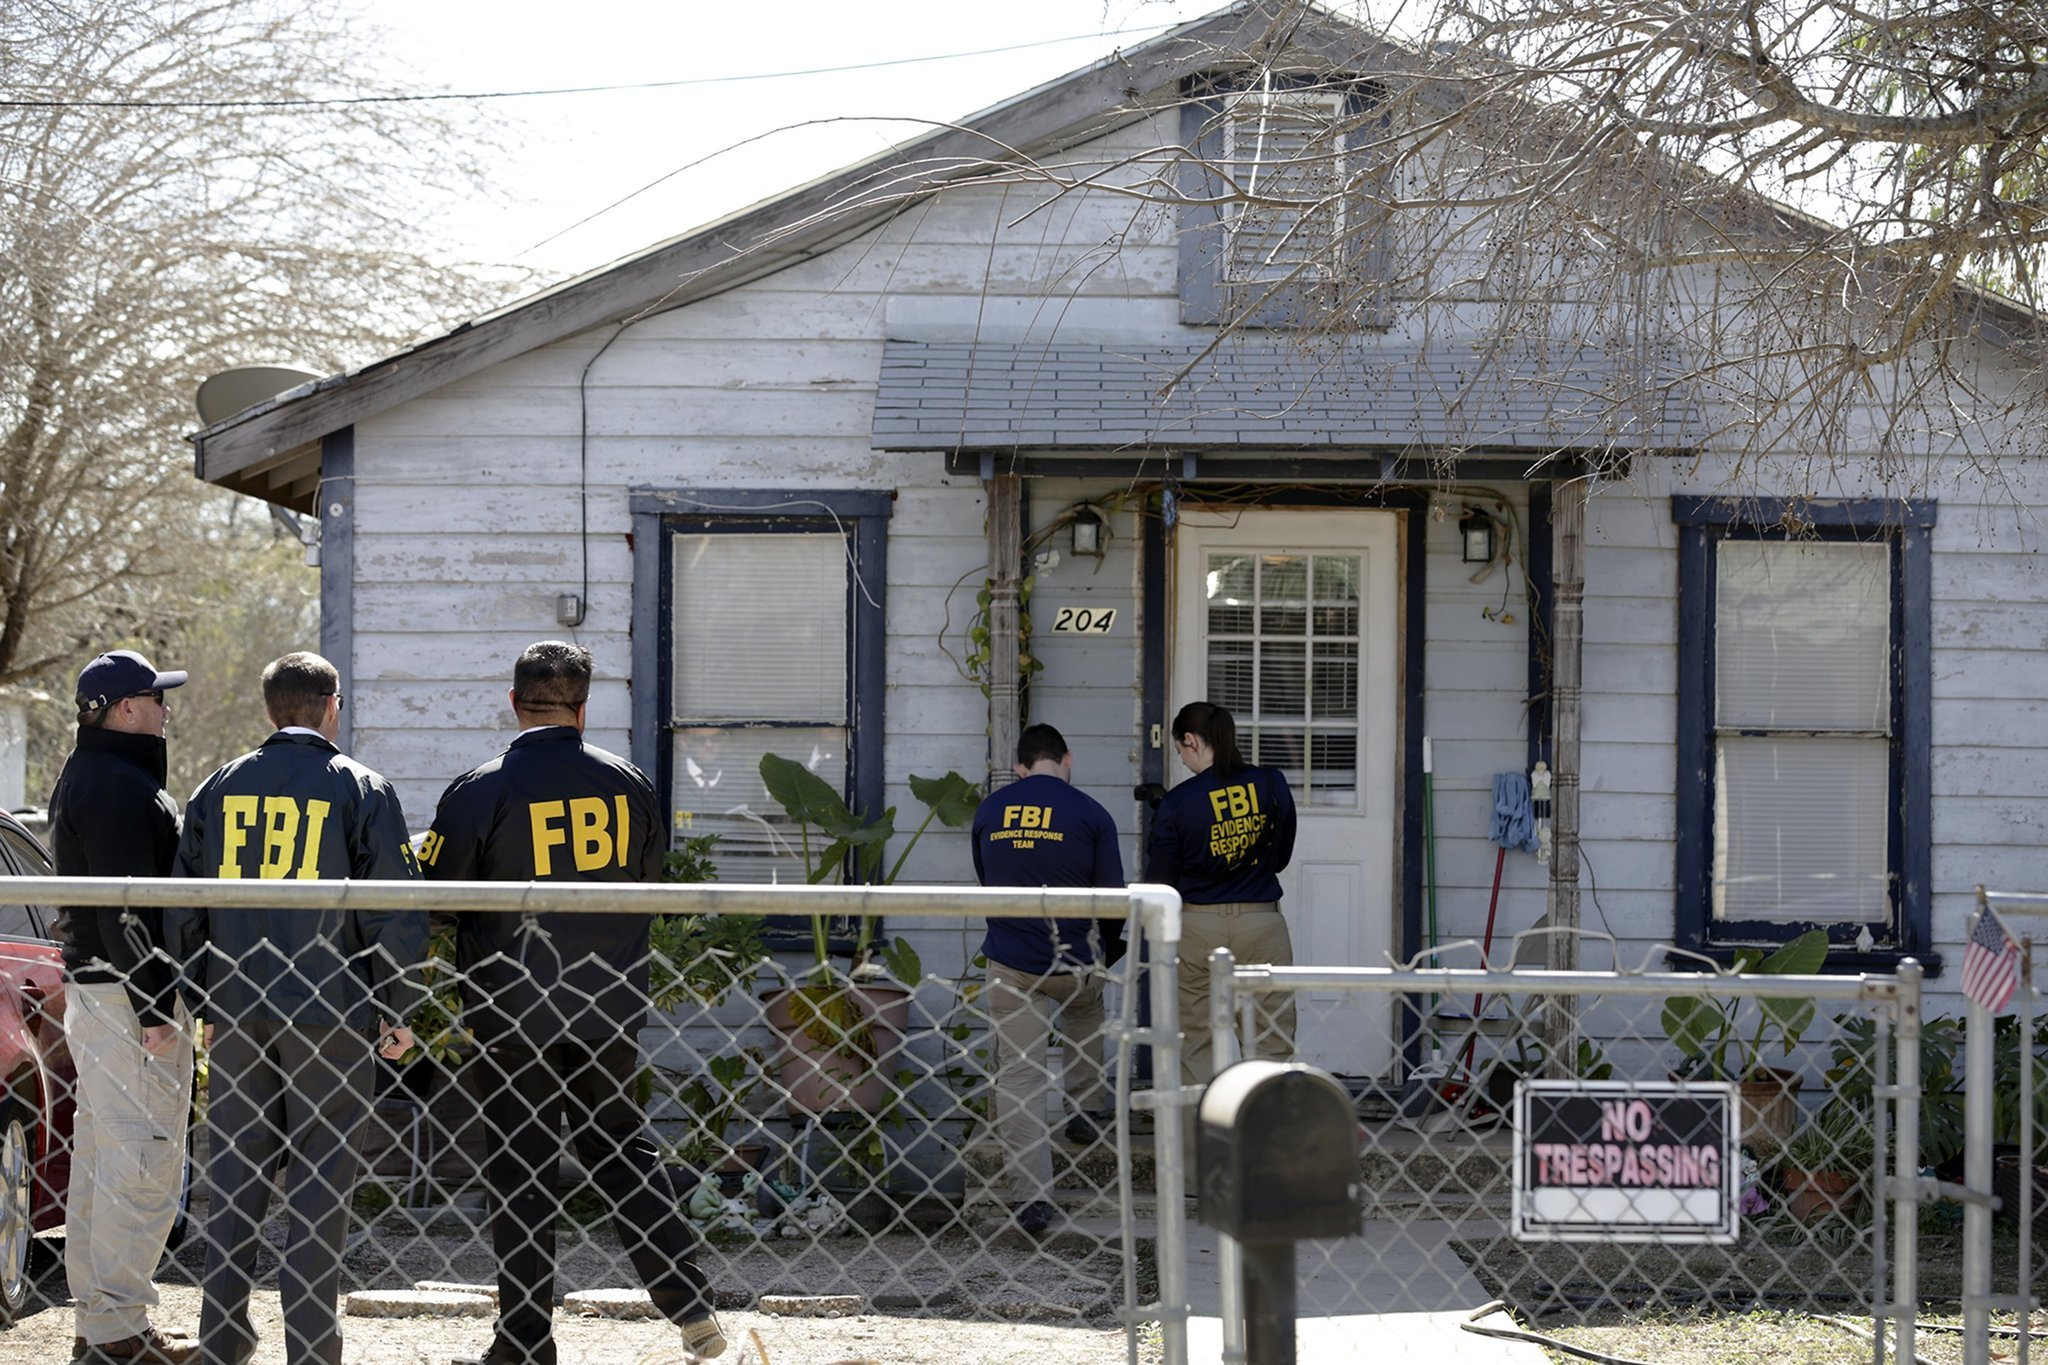 FBI arrests nearly all of the top officials of Crystal City, Texas